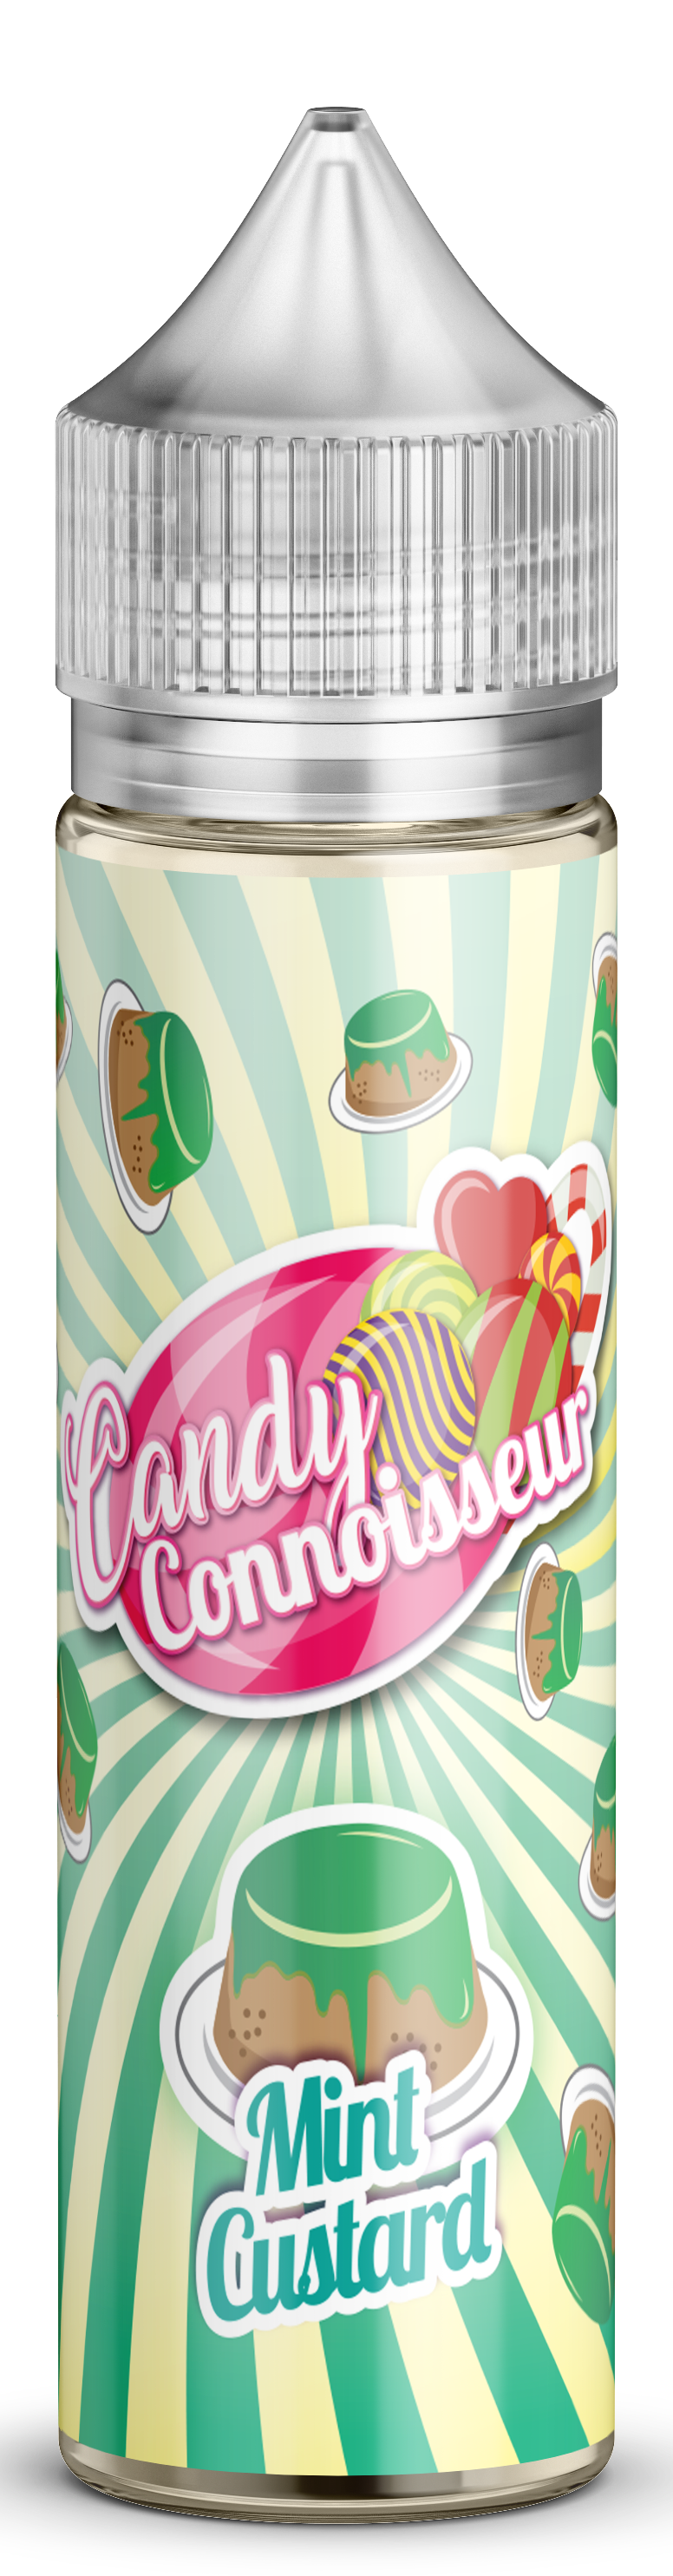 Mint Custard - Candy 50ml